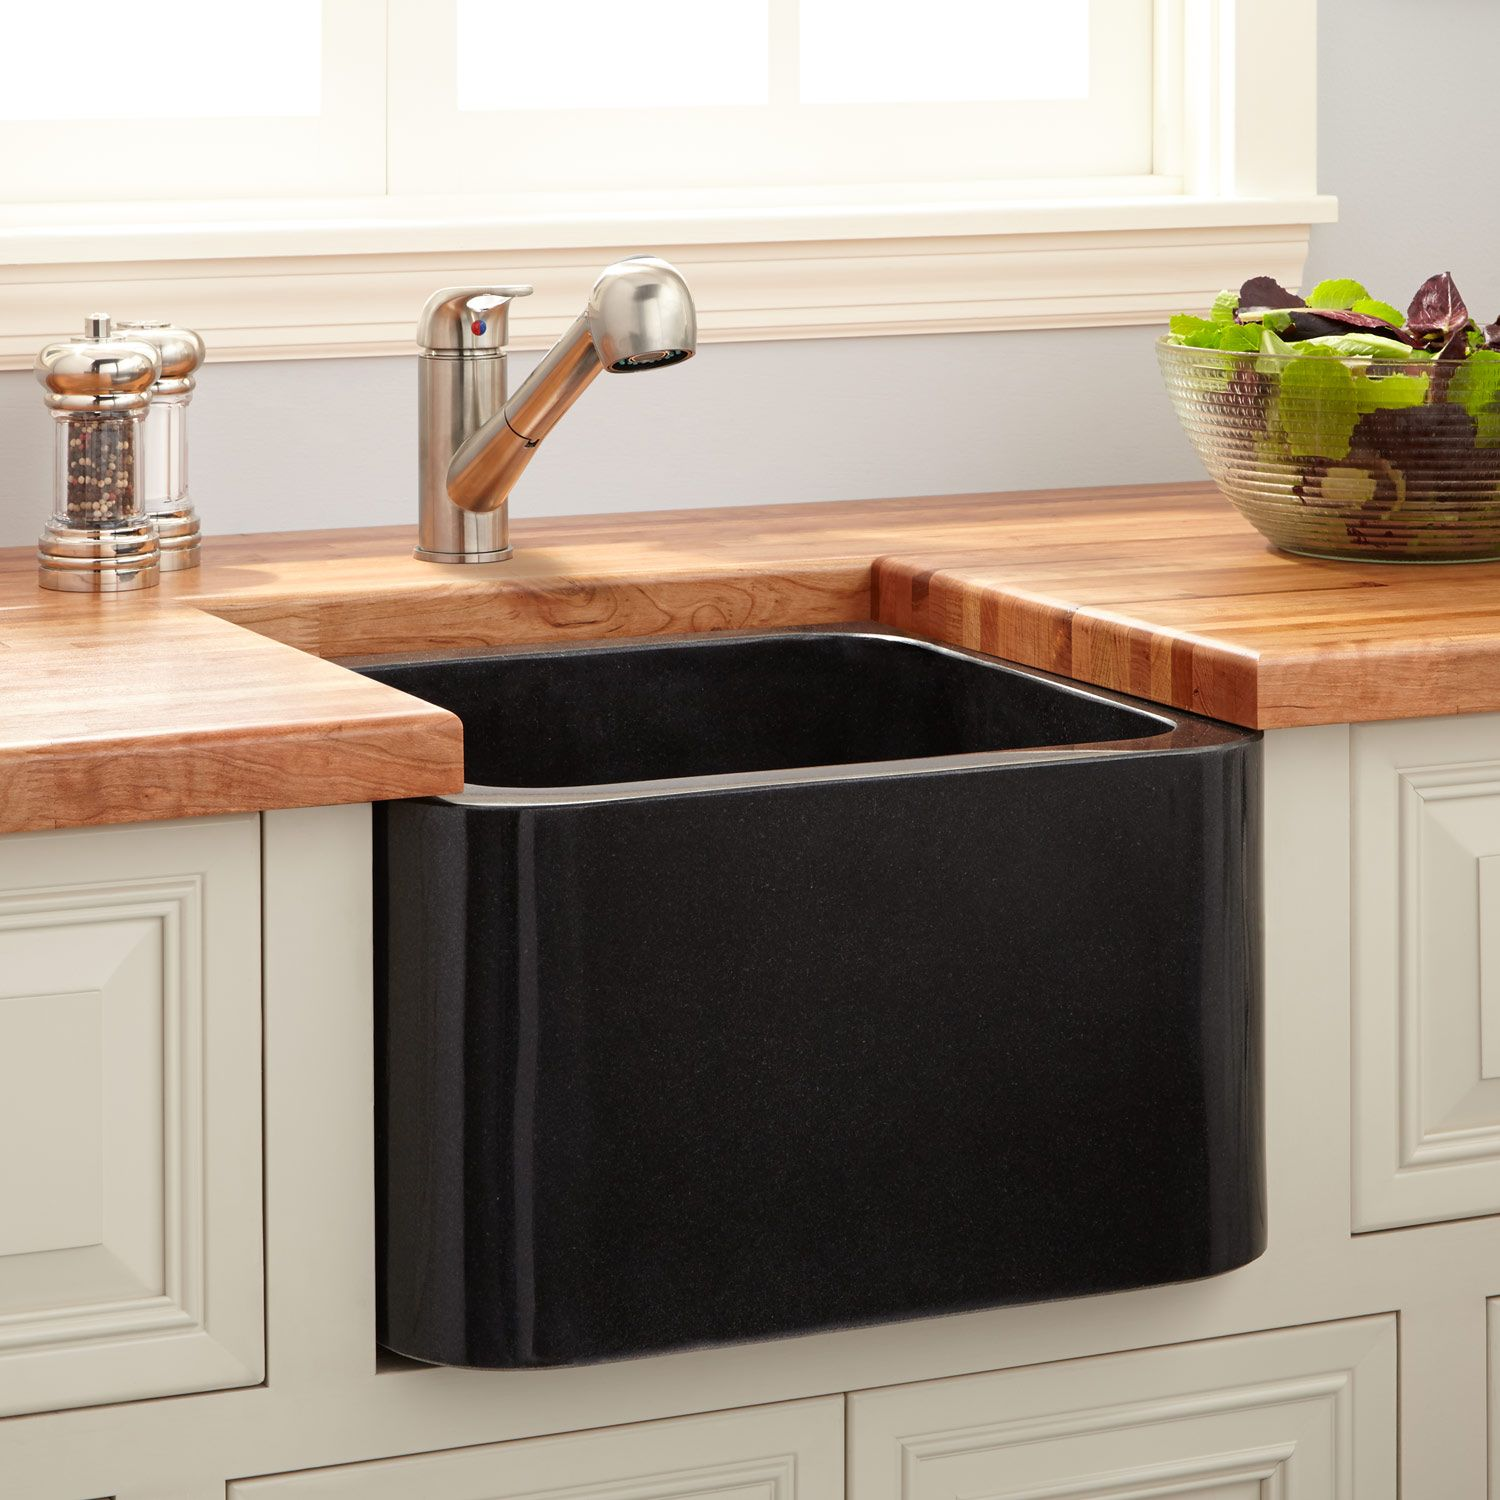 Kitchen Sink For 18 Cabinet Kitchen Sink Buying Guide